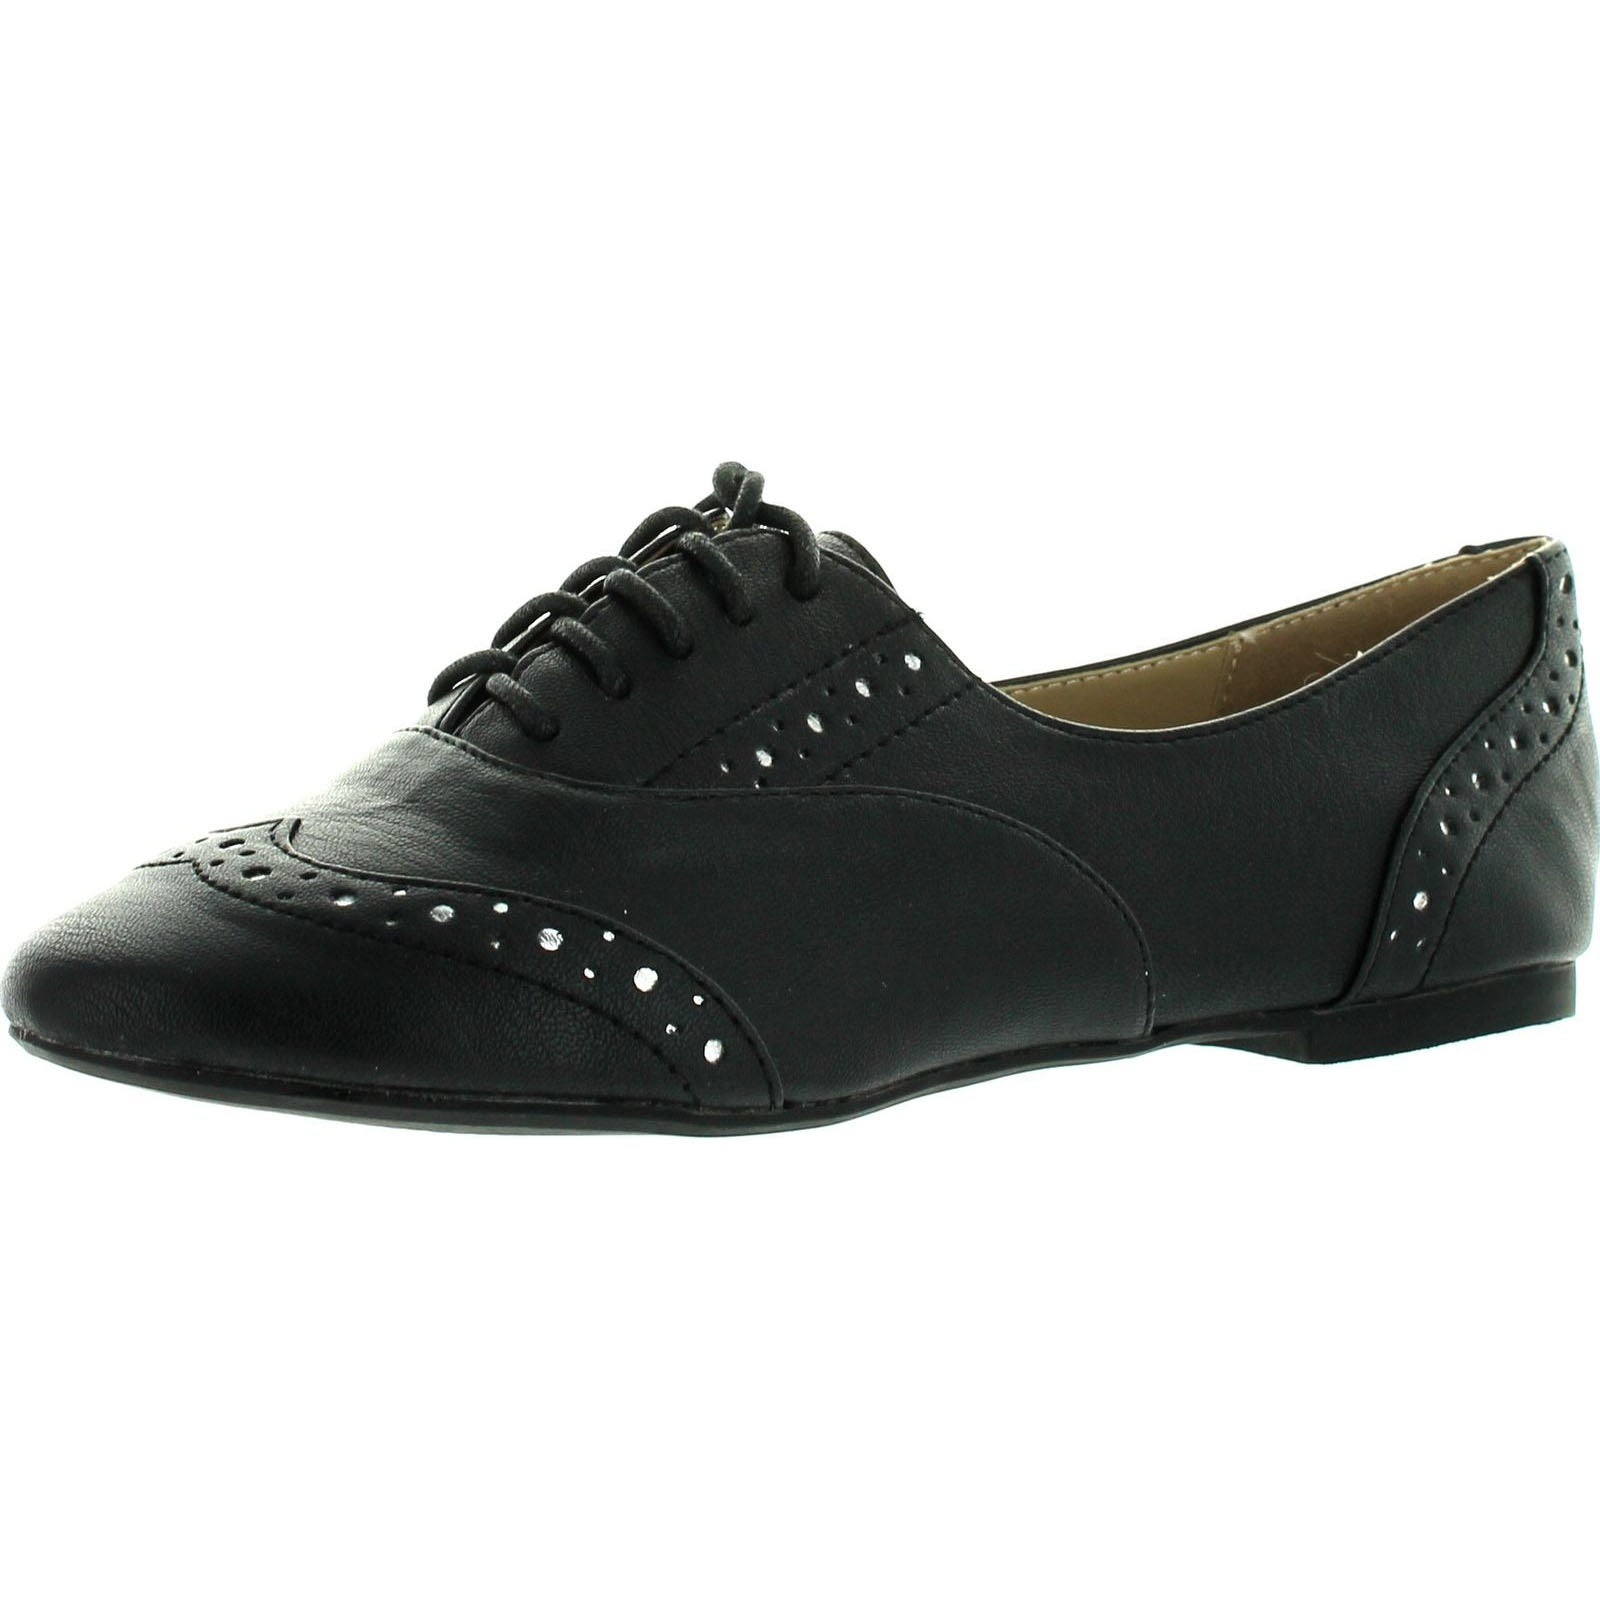 save up to 80% lace up in low priced Restricted Womens Savoy Oxford Flats Shoes - Black